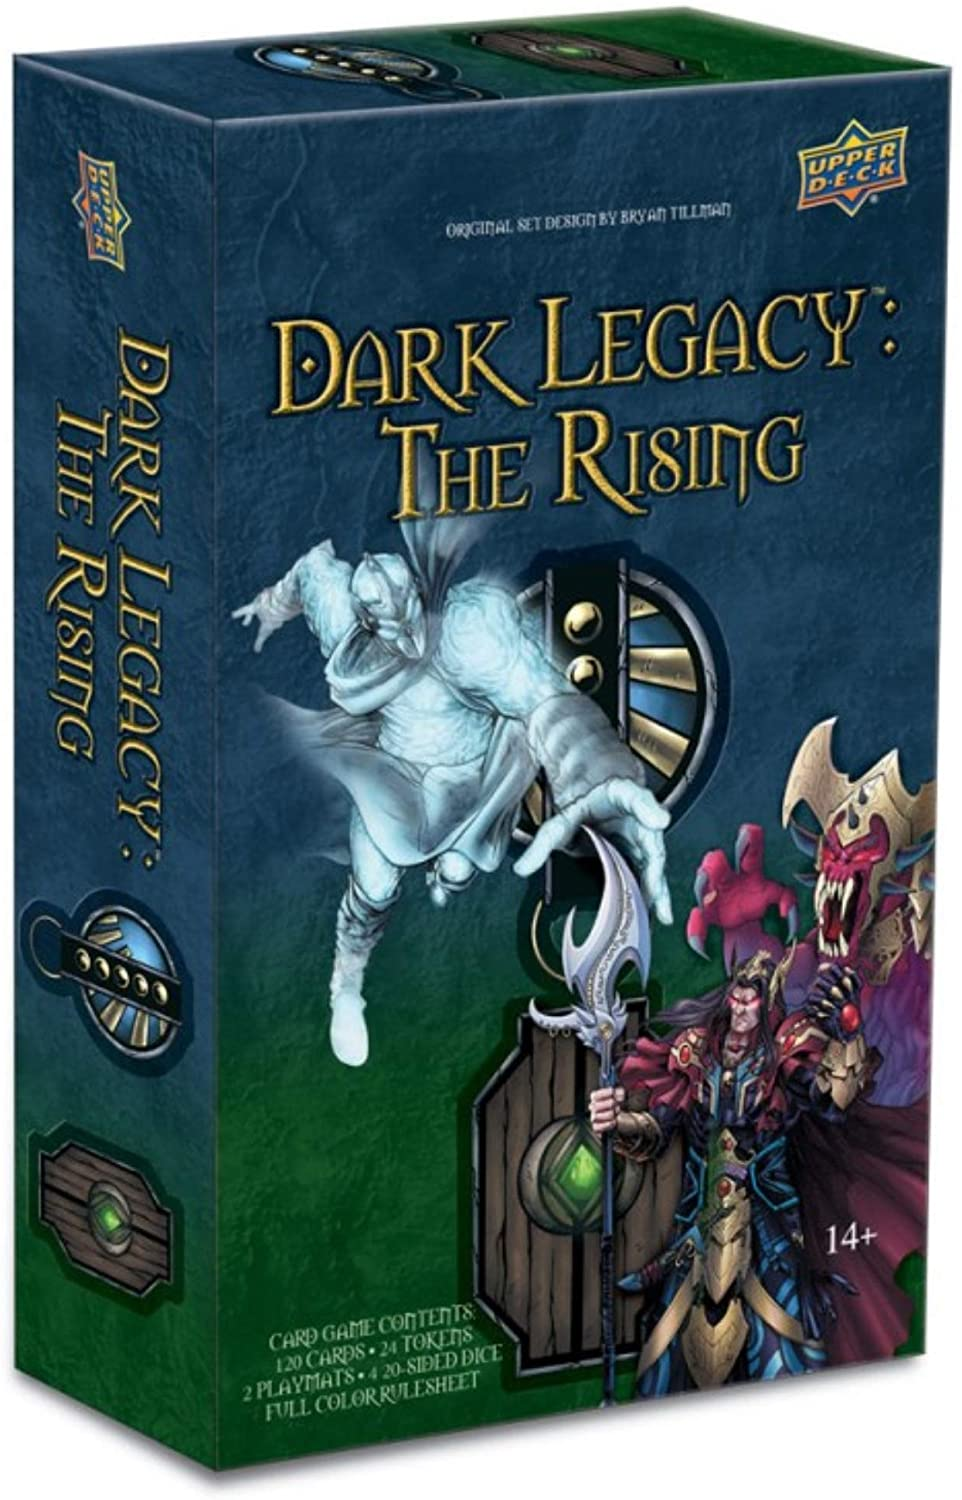 Dark Legacy: The Rising: Earth vs Wind Starter | Misty Mountain Games